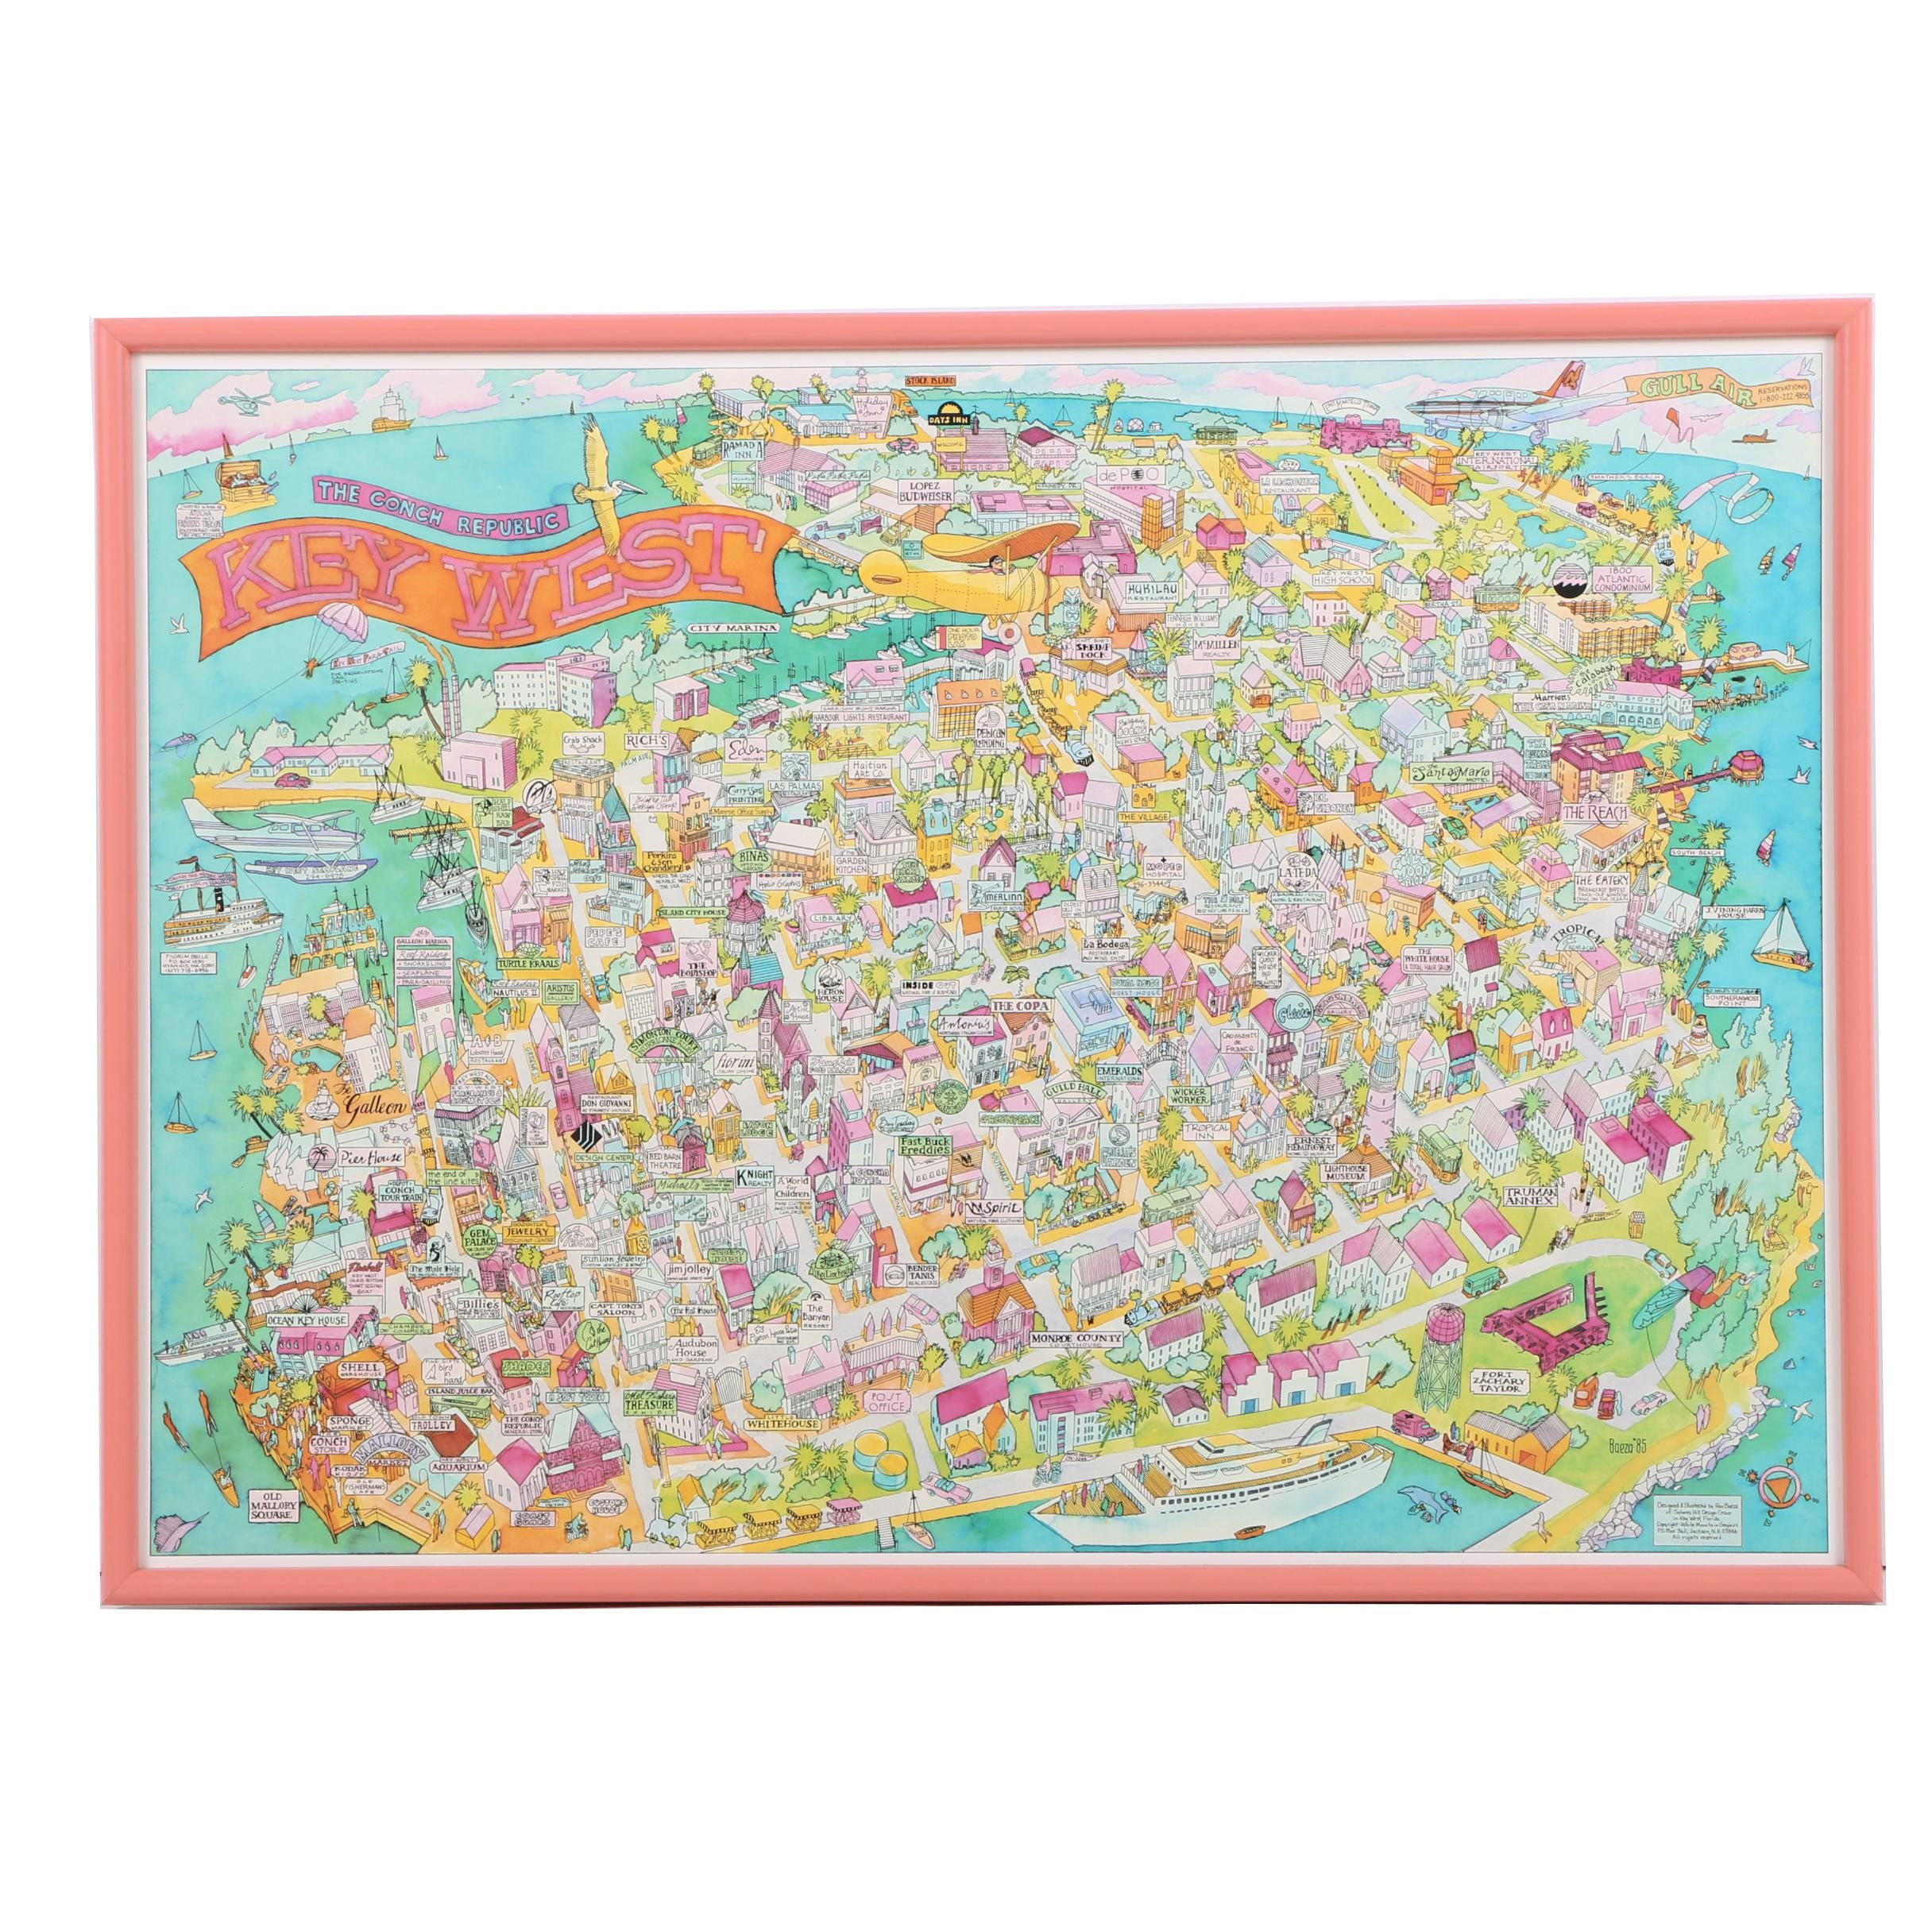 Offset Lithograph After Ron Baeza Map of Key West